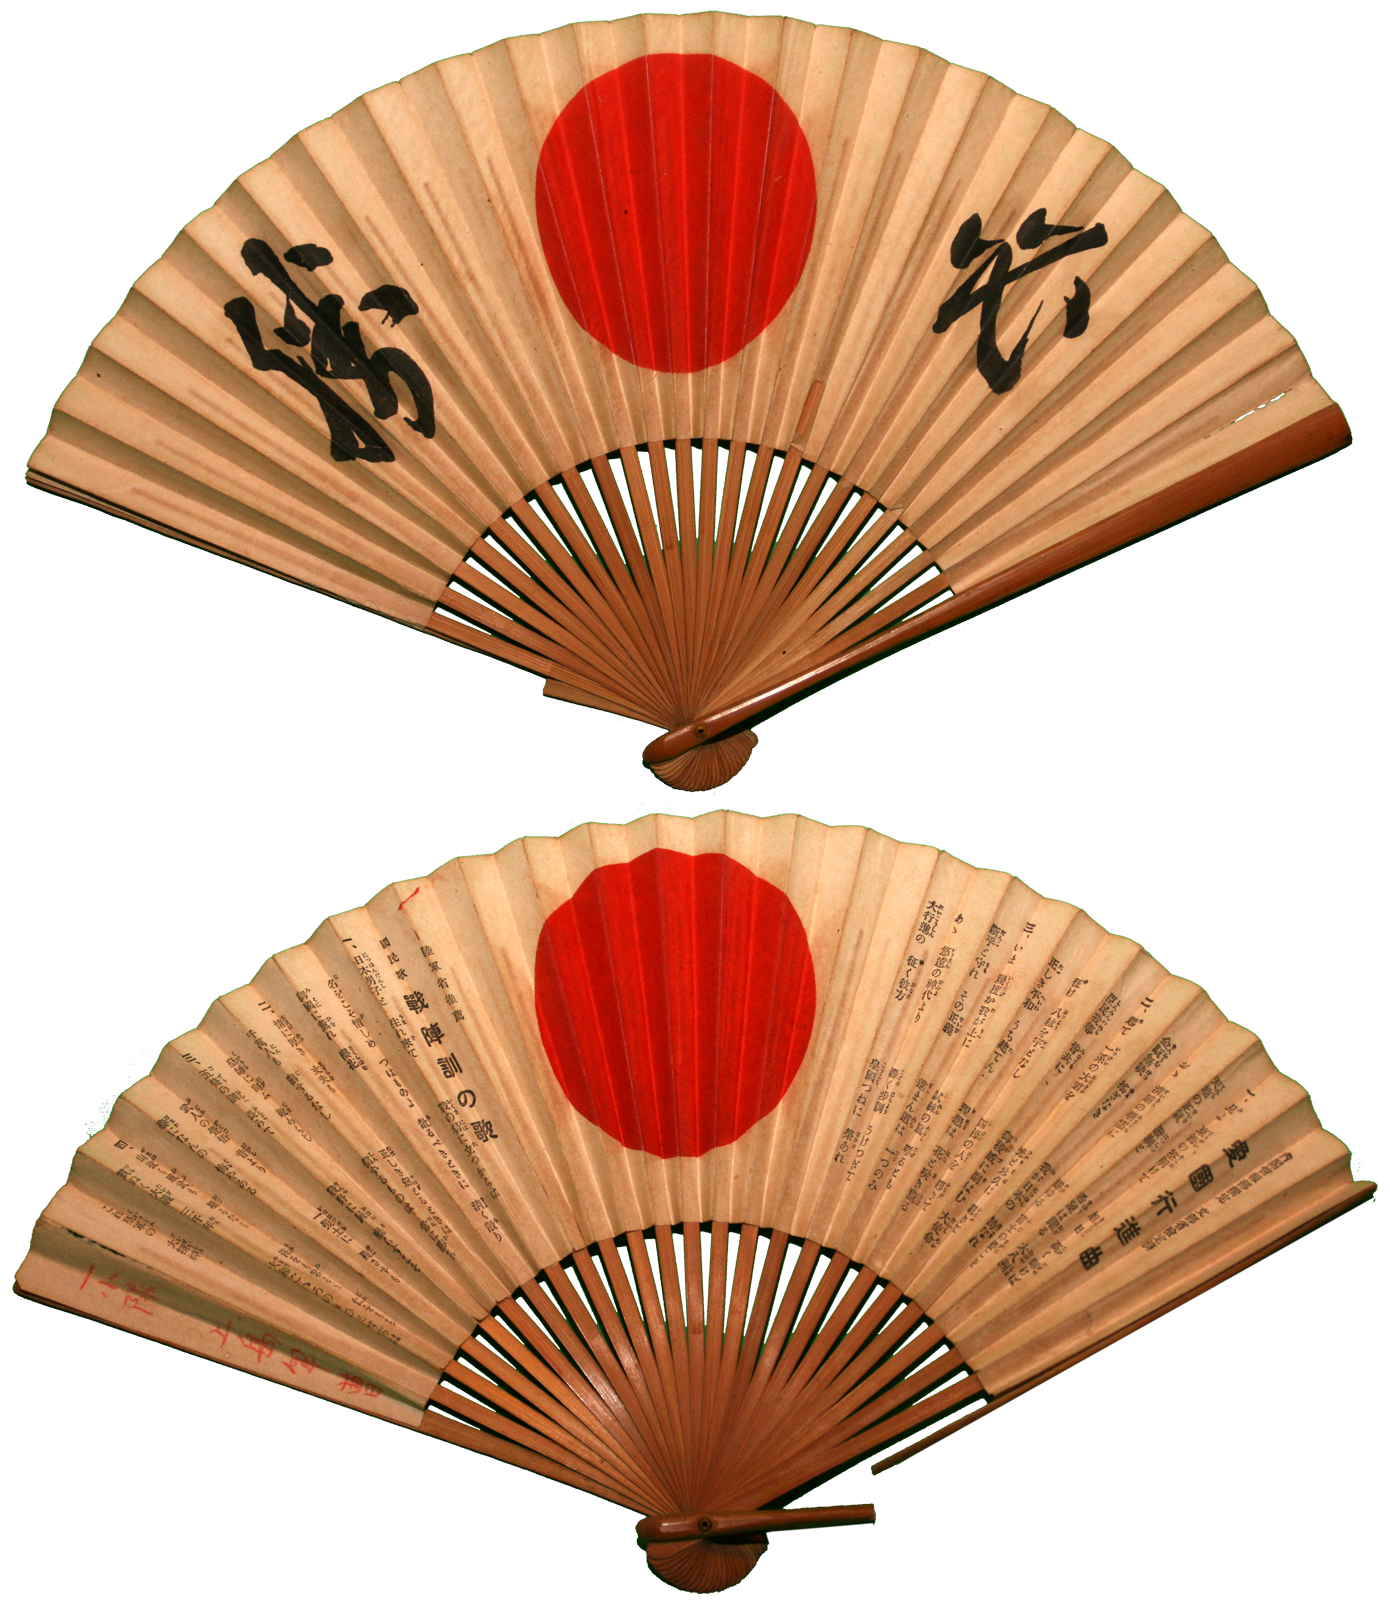 Fan clipart fan japan. Traditional japanese top is